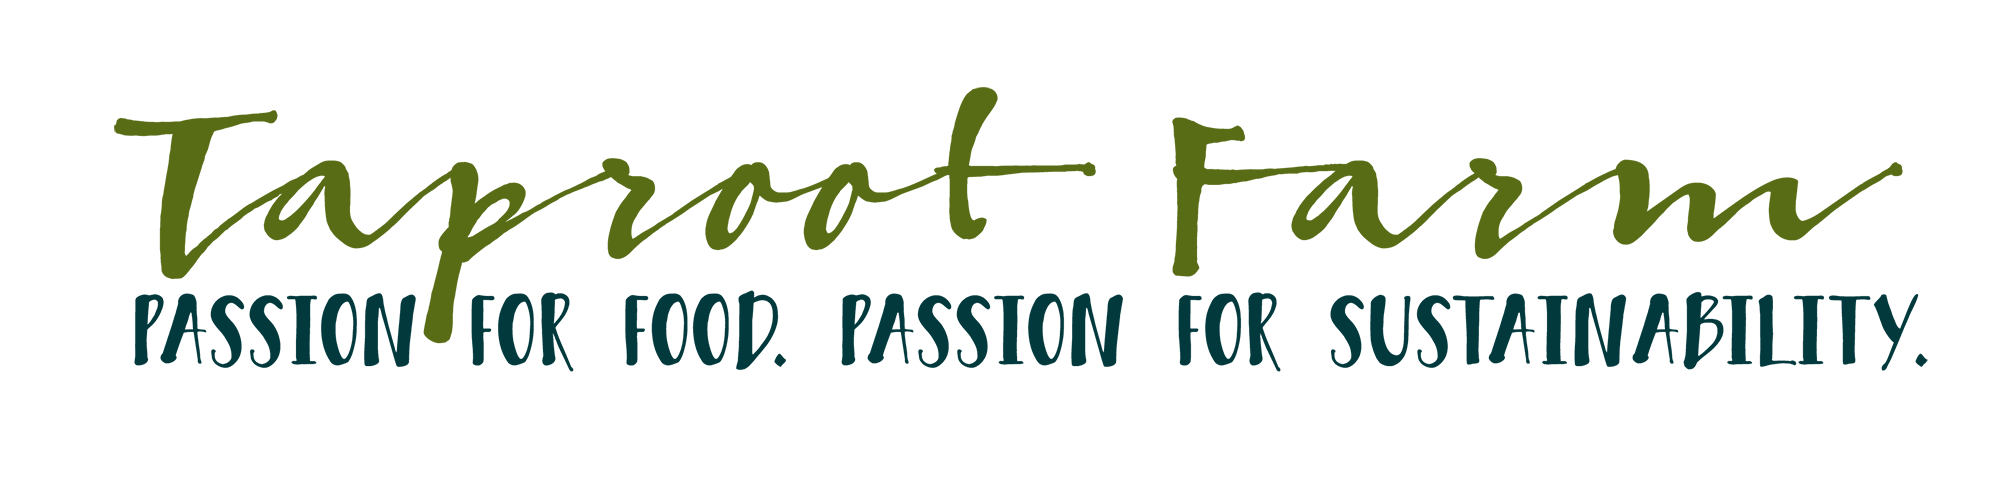 Taproot Farm  logo